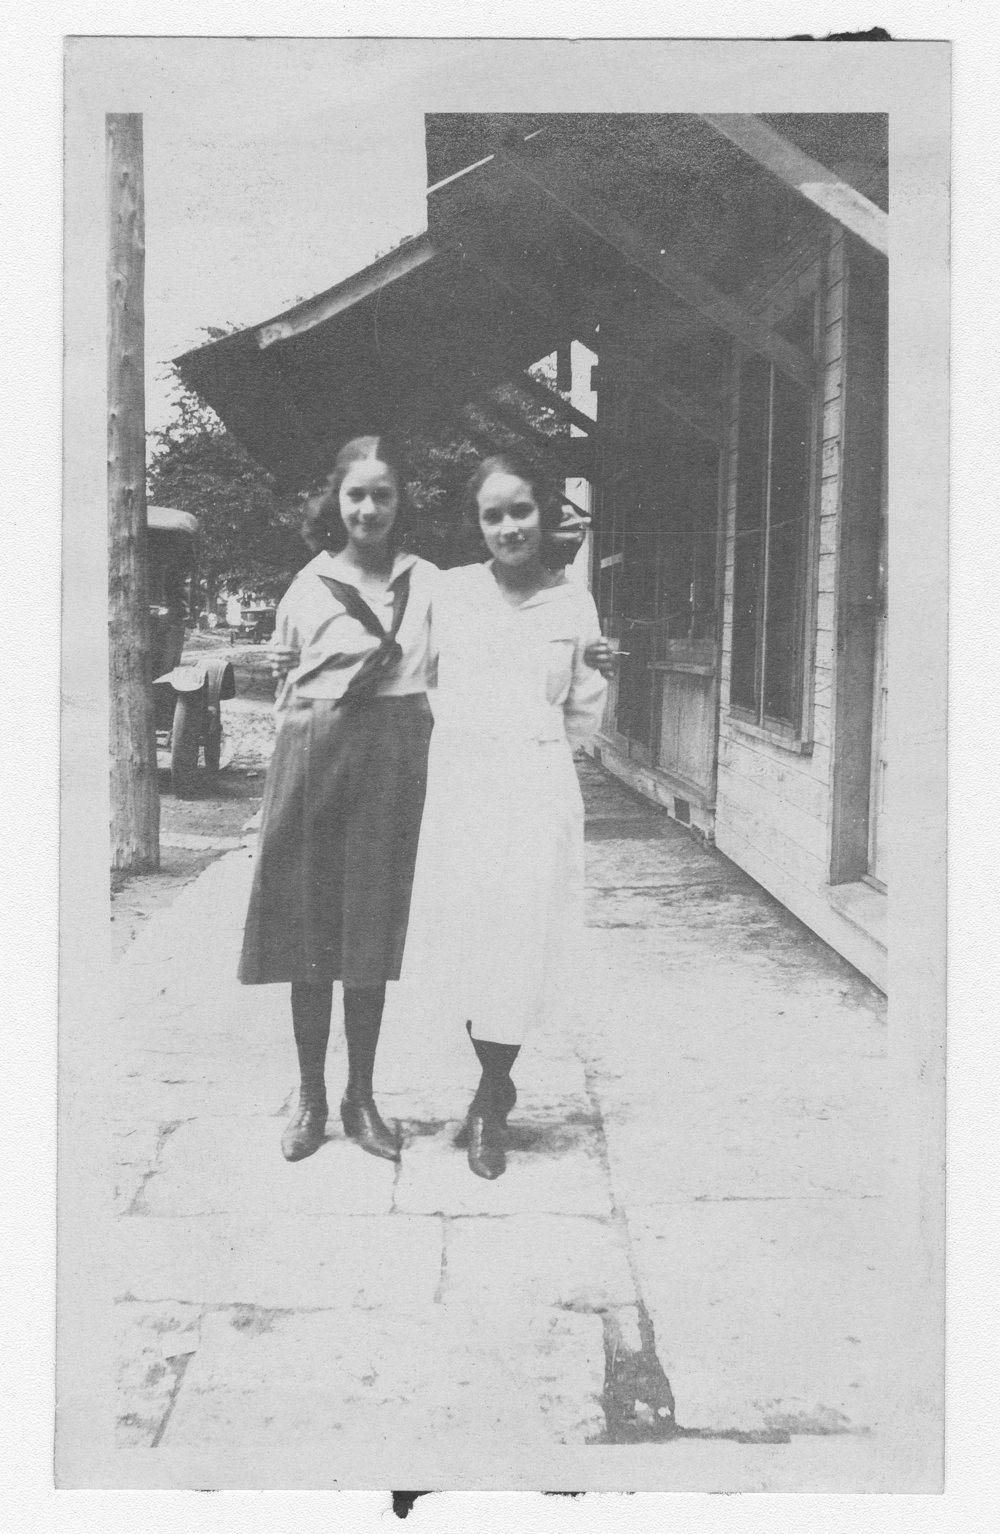 Nedra Cain and Esther Wolfe on South Elm Street in Perry, Kansas - 1